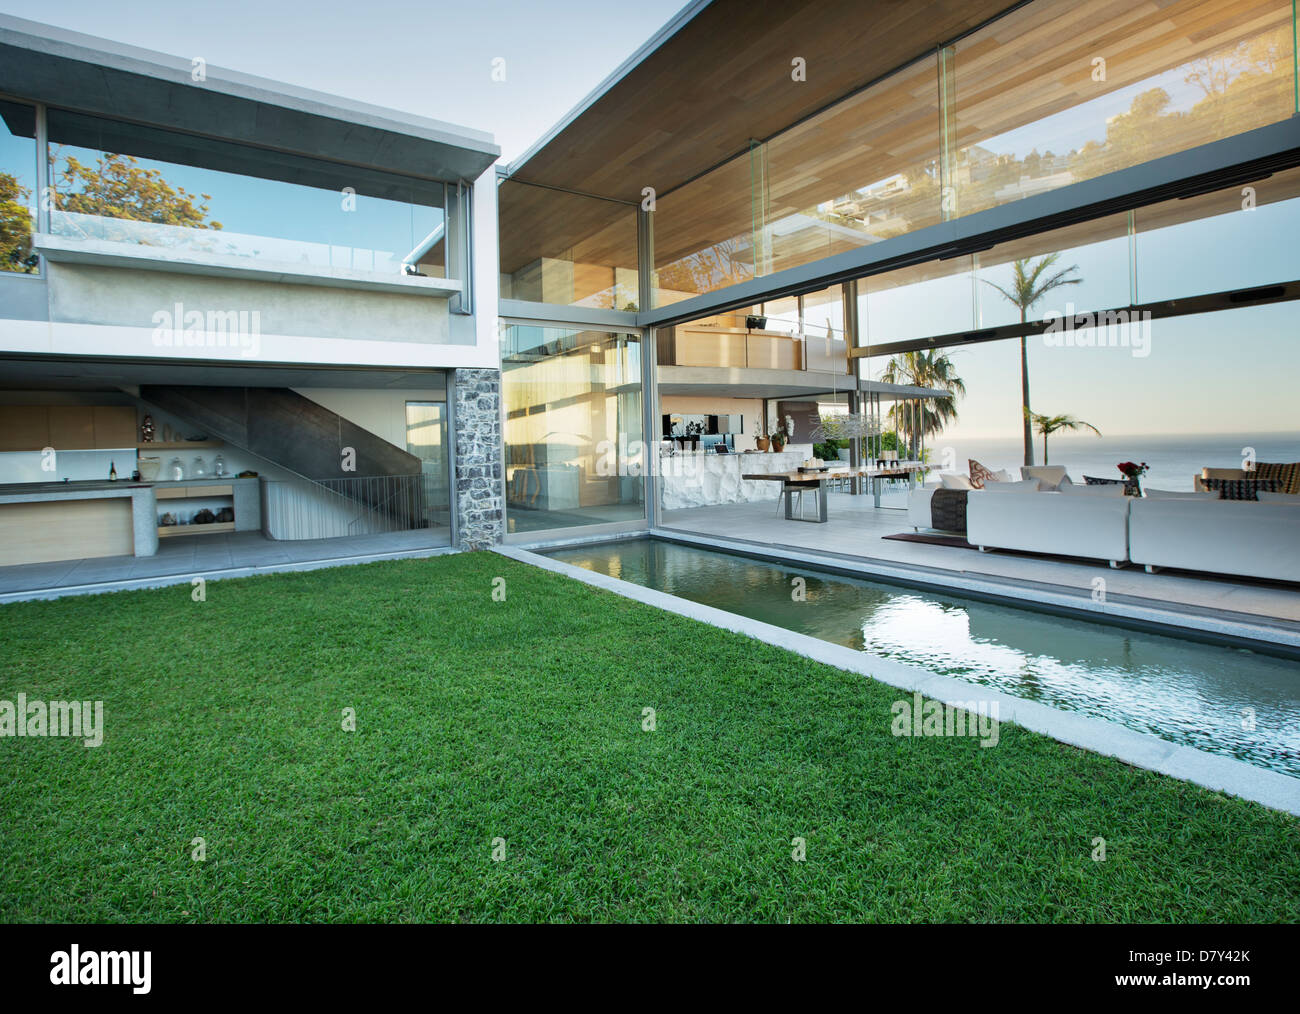 Swimming pool and patio of modern house - Stock Image